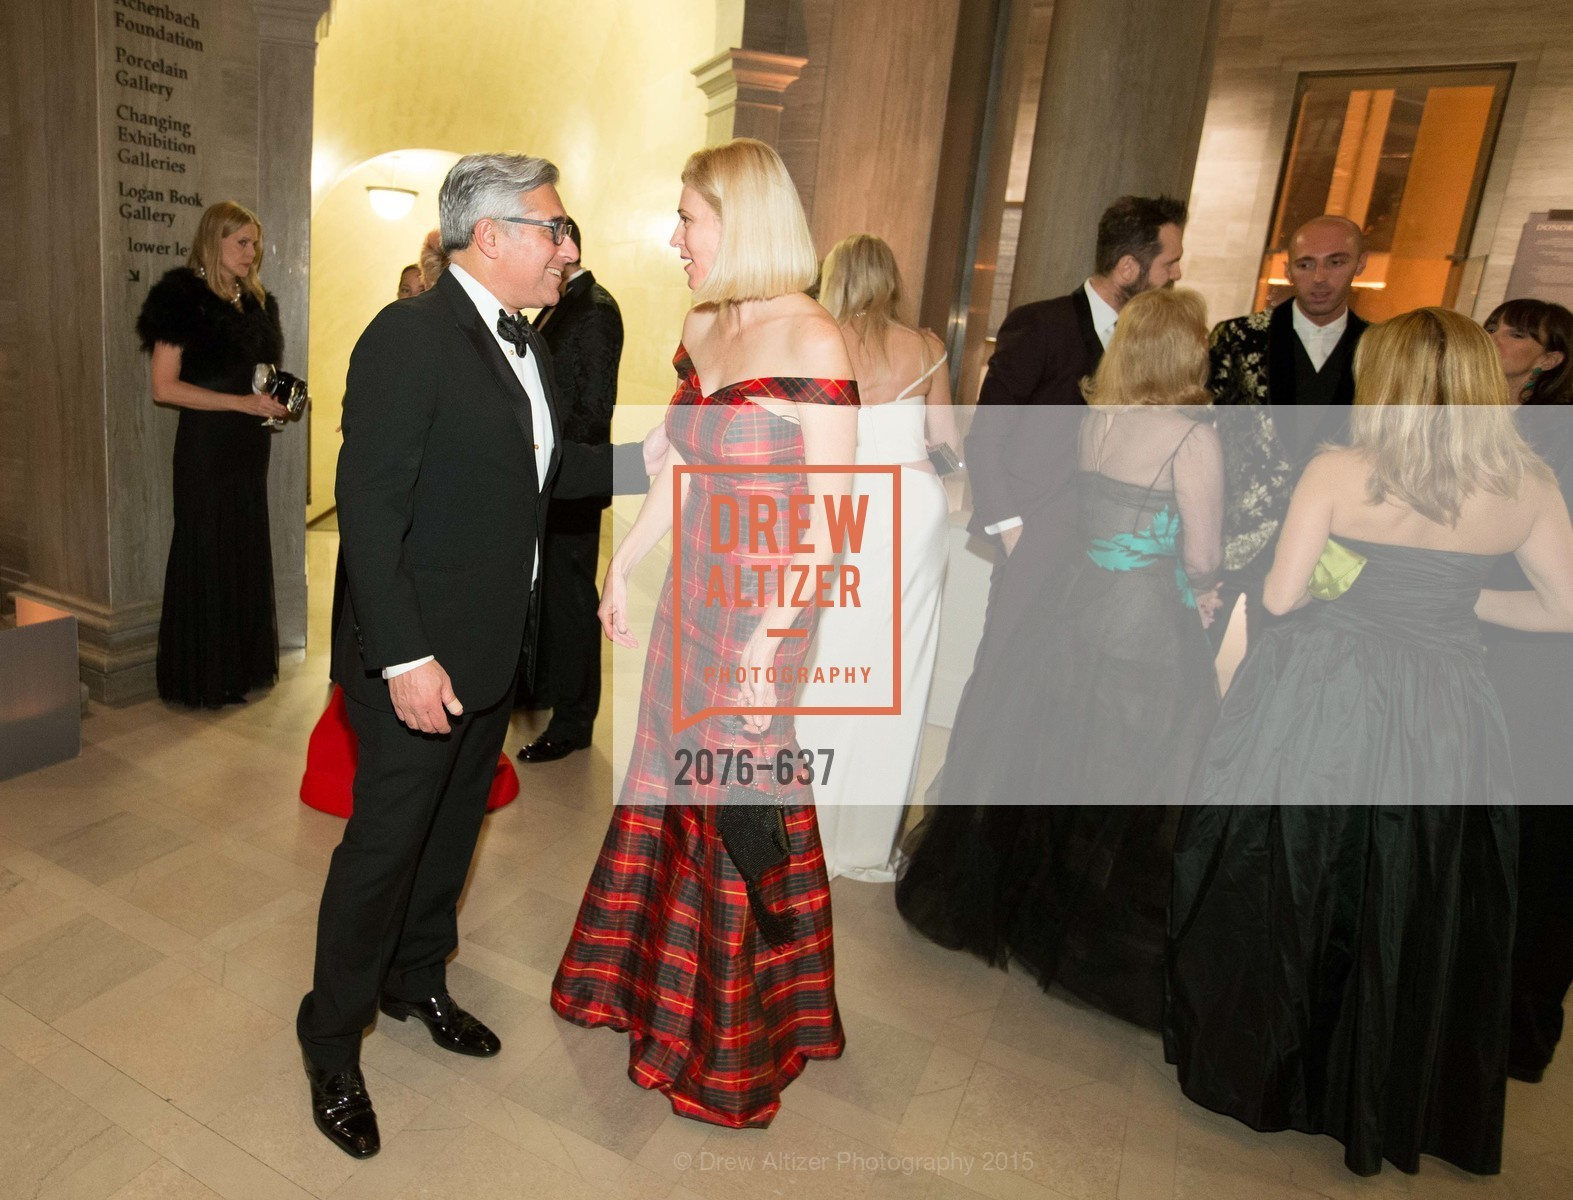 David Shimmon, Lauren Hall, AN ELEGANT EVENING Presented by the Fine Arts Museums of San Francisco, Legion of Honor, Court of Honor. 100 34th Ave, December 8th, 2015,Drew Altizer, Drew Altizer Photography, full-service agency, private events, San Francisco photographer, photographer california